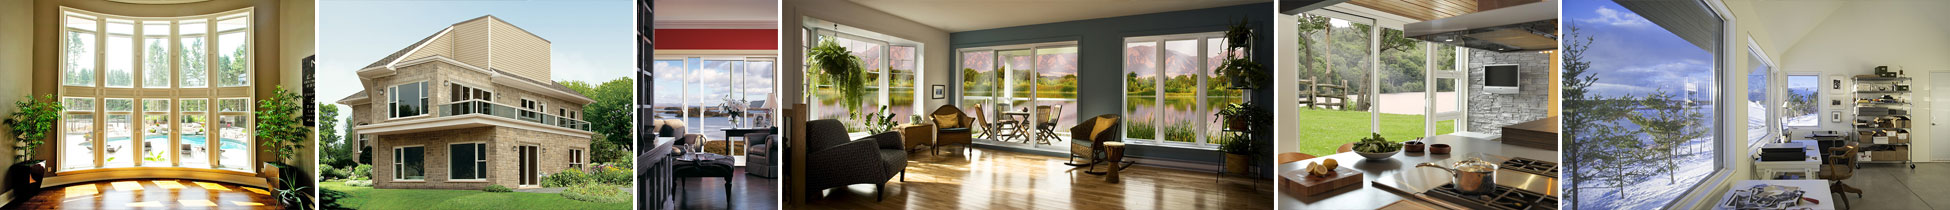 guillotine pvc martin windows and doors. Black Bedroom Furniture Sets. Home Design Ideas